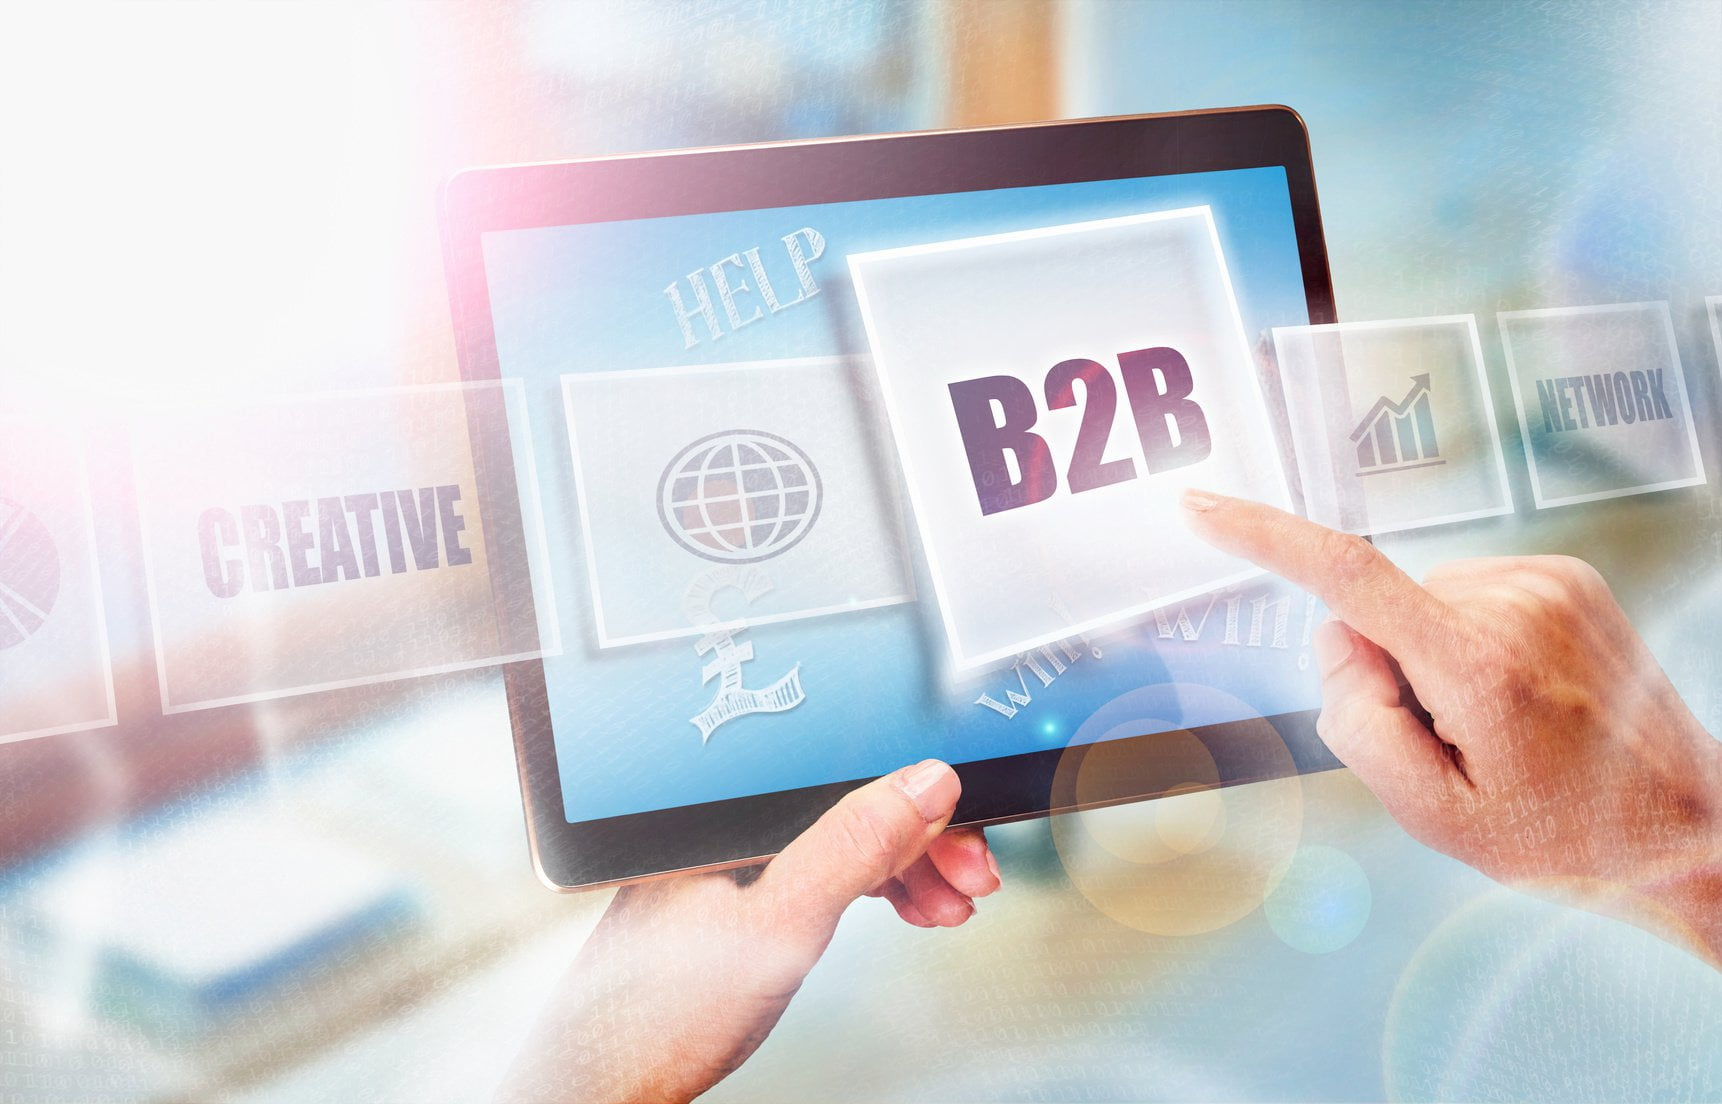 These Are the Digital Marketing Tactics That Will Get You Those Valuable B2B Leads